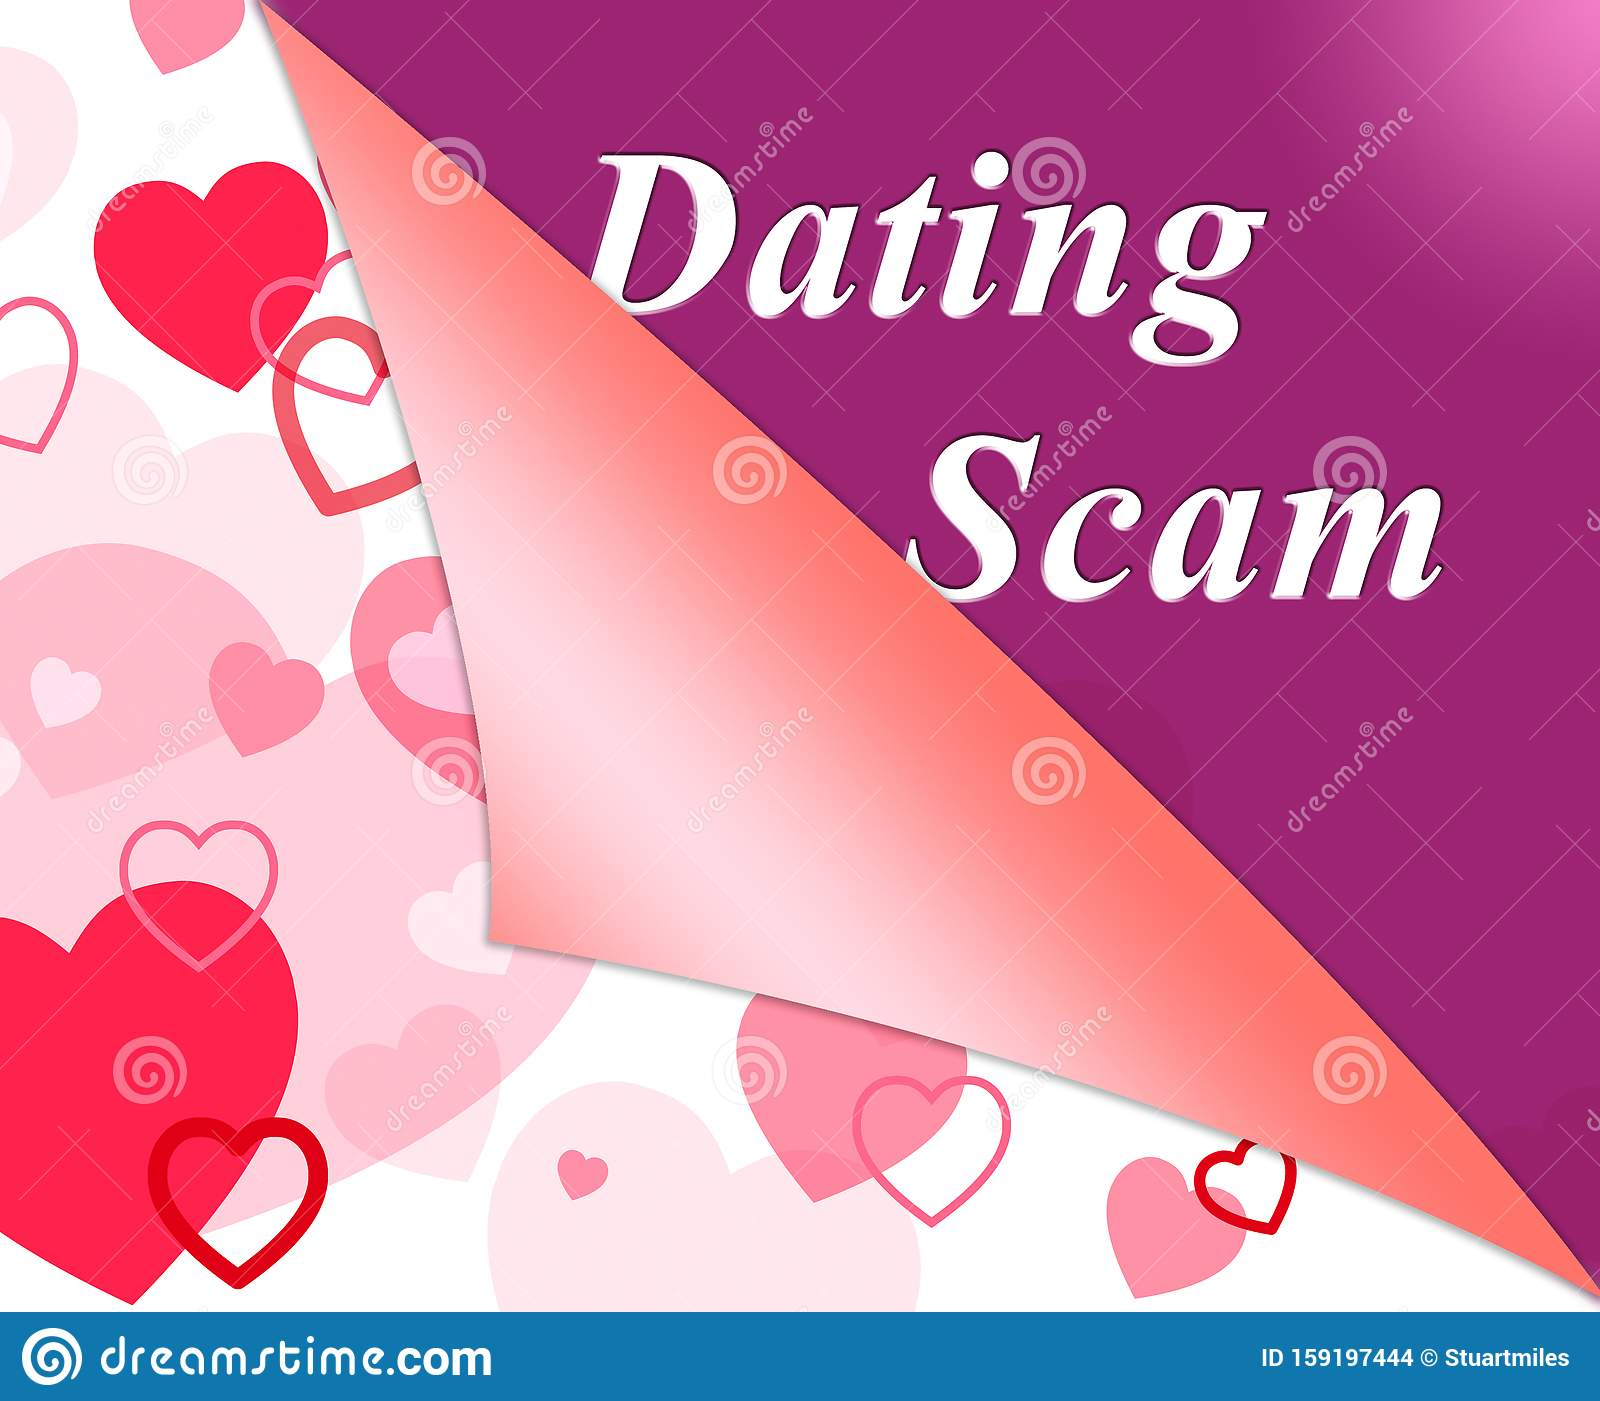 Scammer romance What You